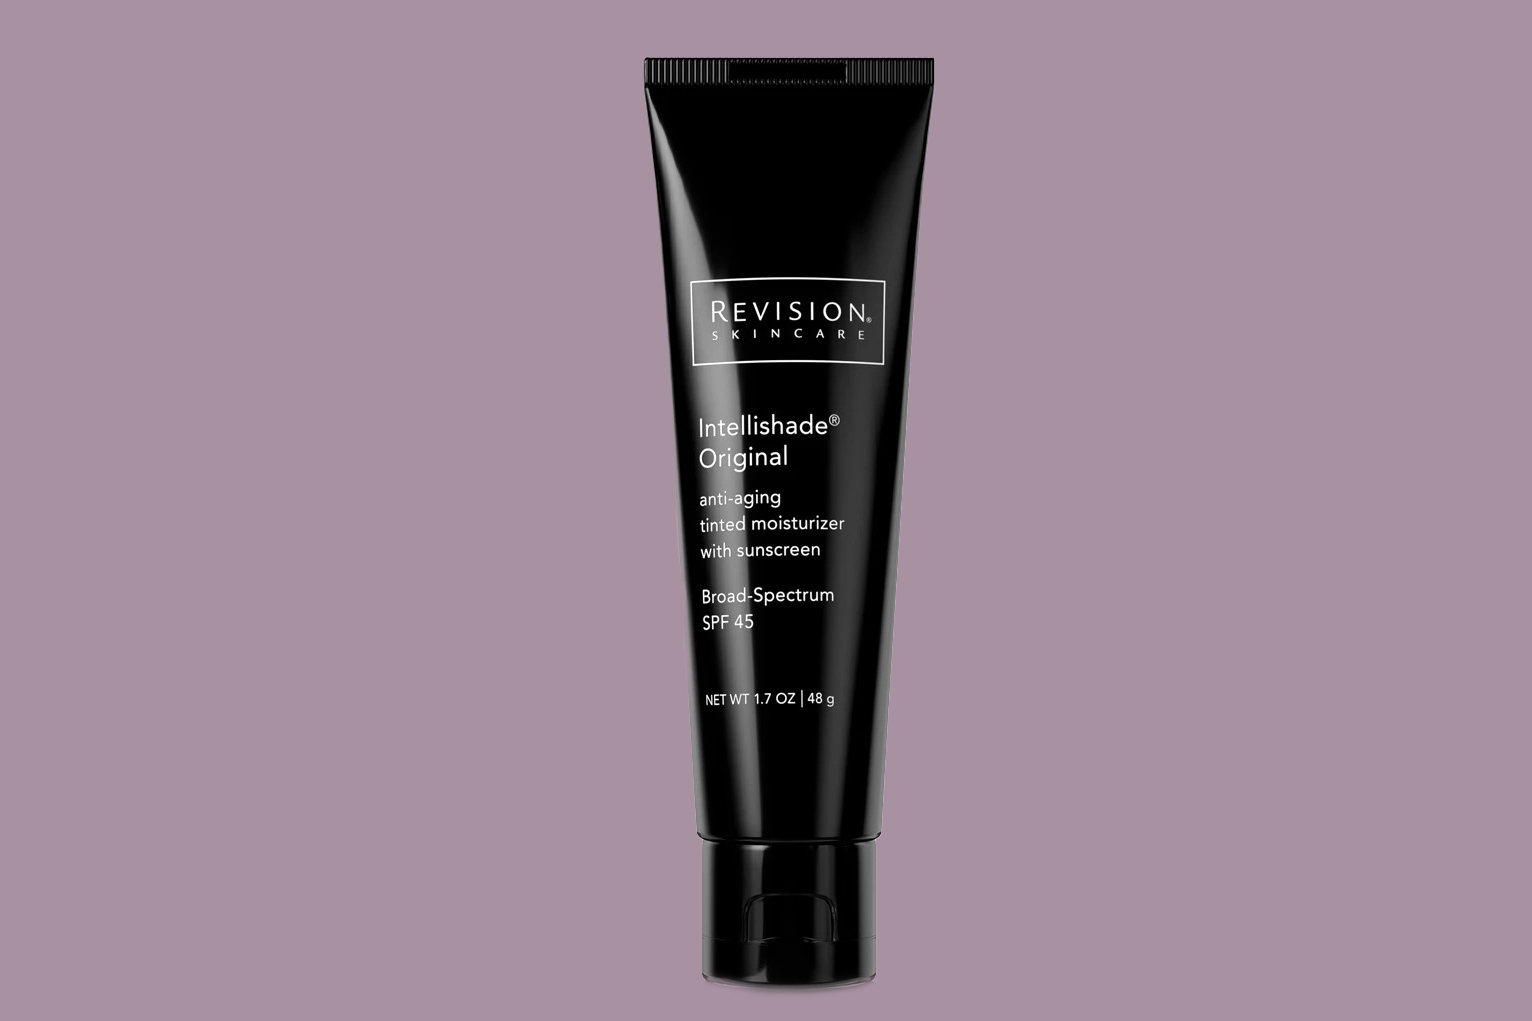 revision skincare tinted sunscreen tube